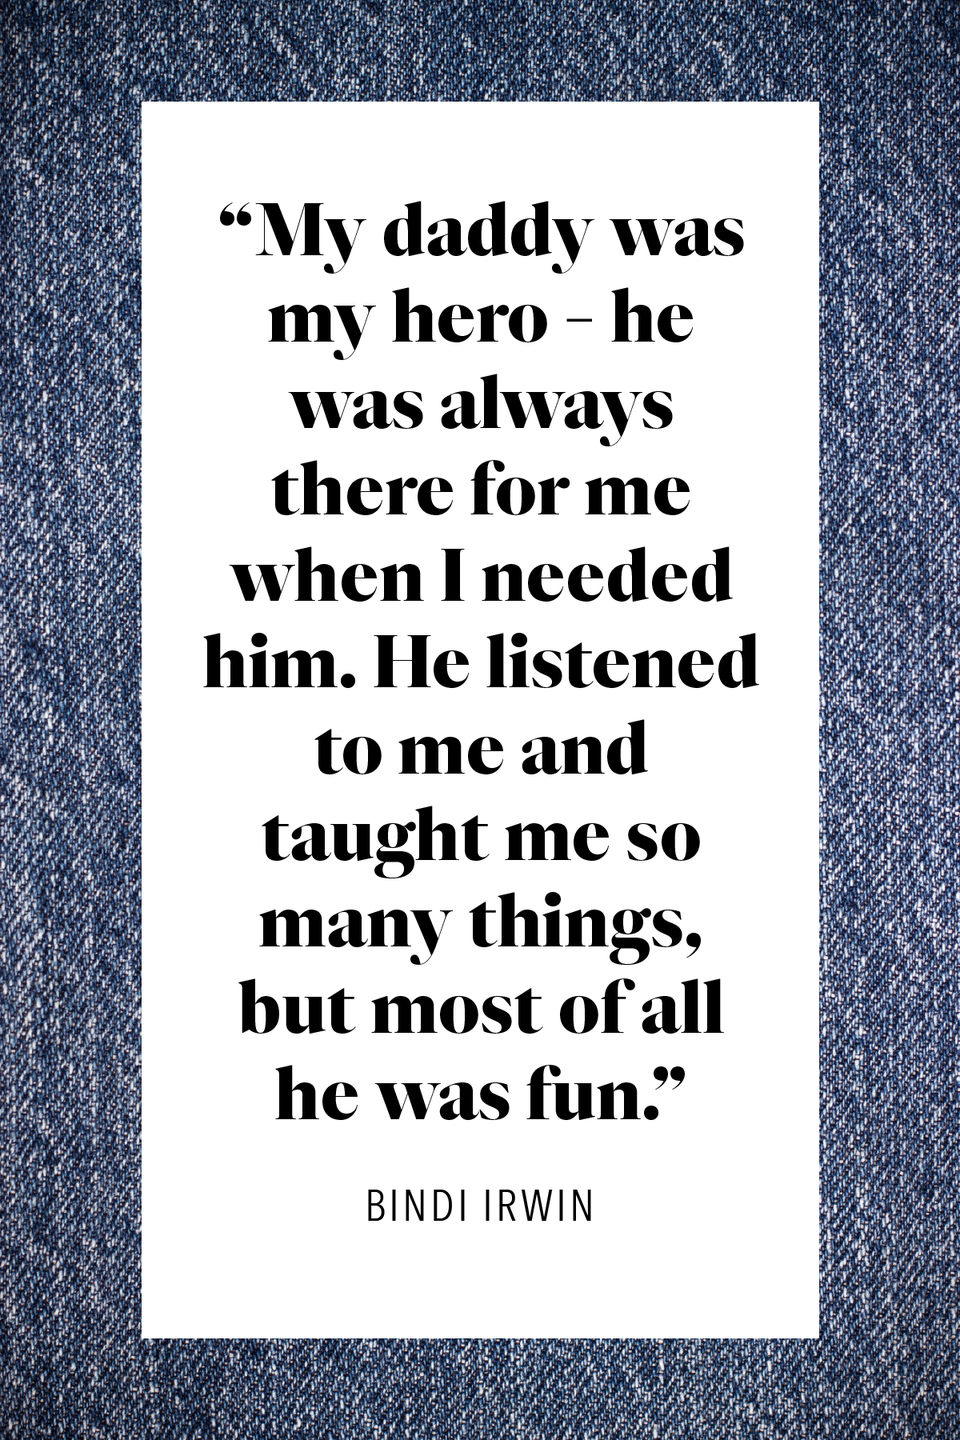 Share These Father S Day Quotes With The Special Dad In Your Life